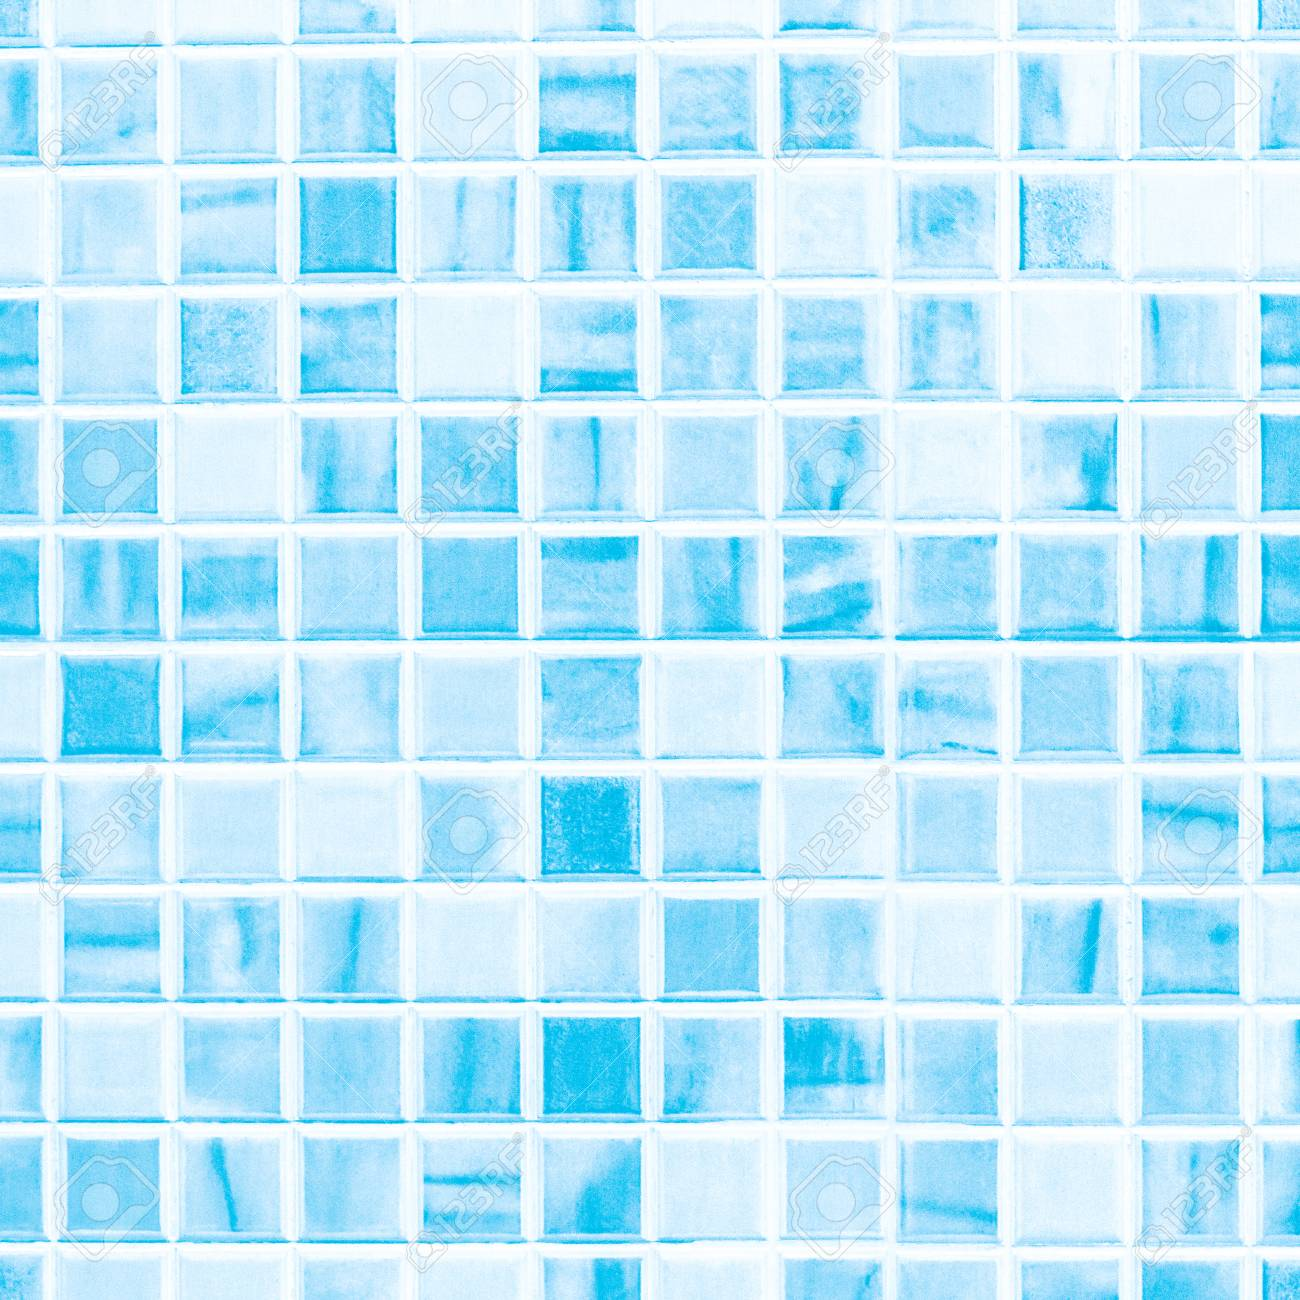 Blue Ceramic Tile Wall Texture Ideal For A Background And Used ...